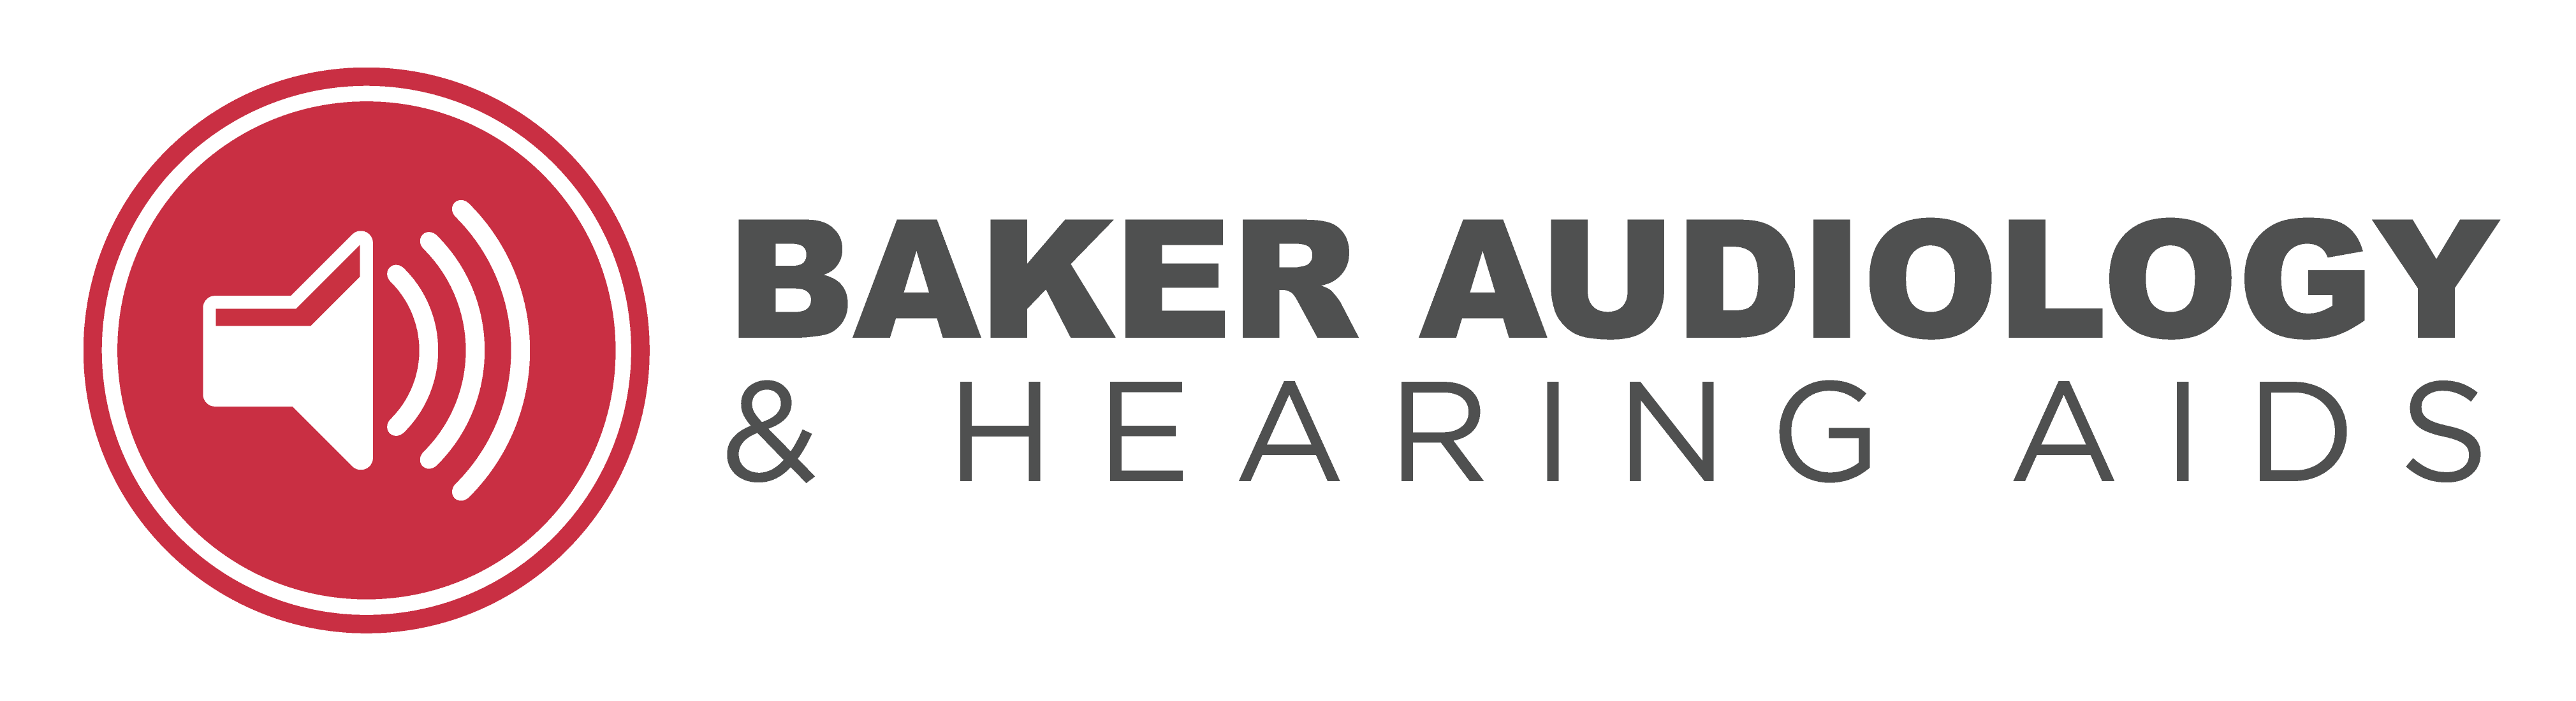 Baker Audiology & Hearing Aids